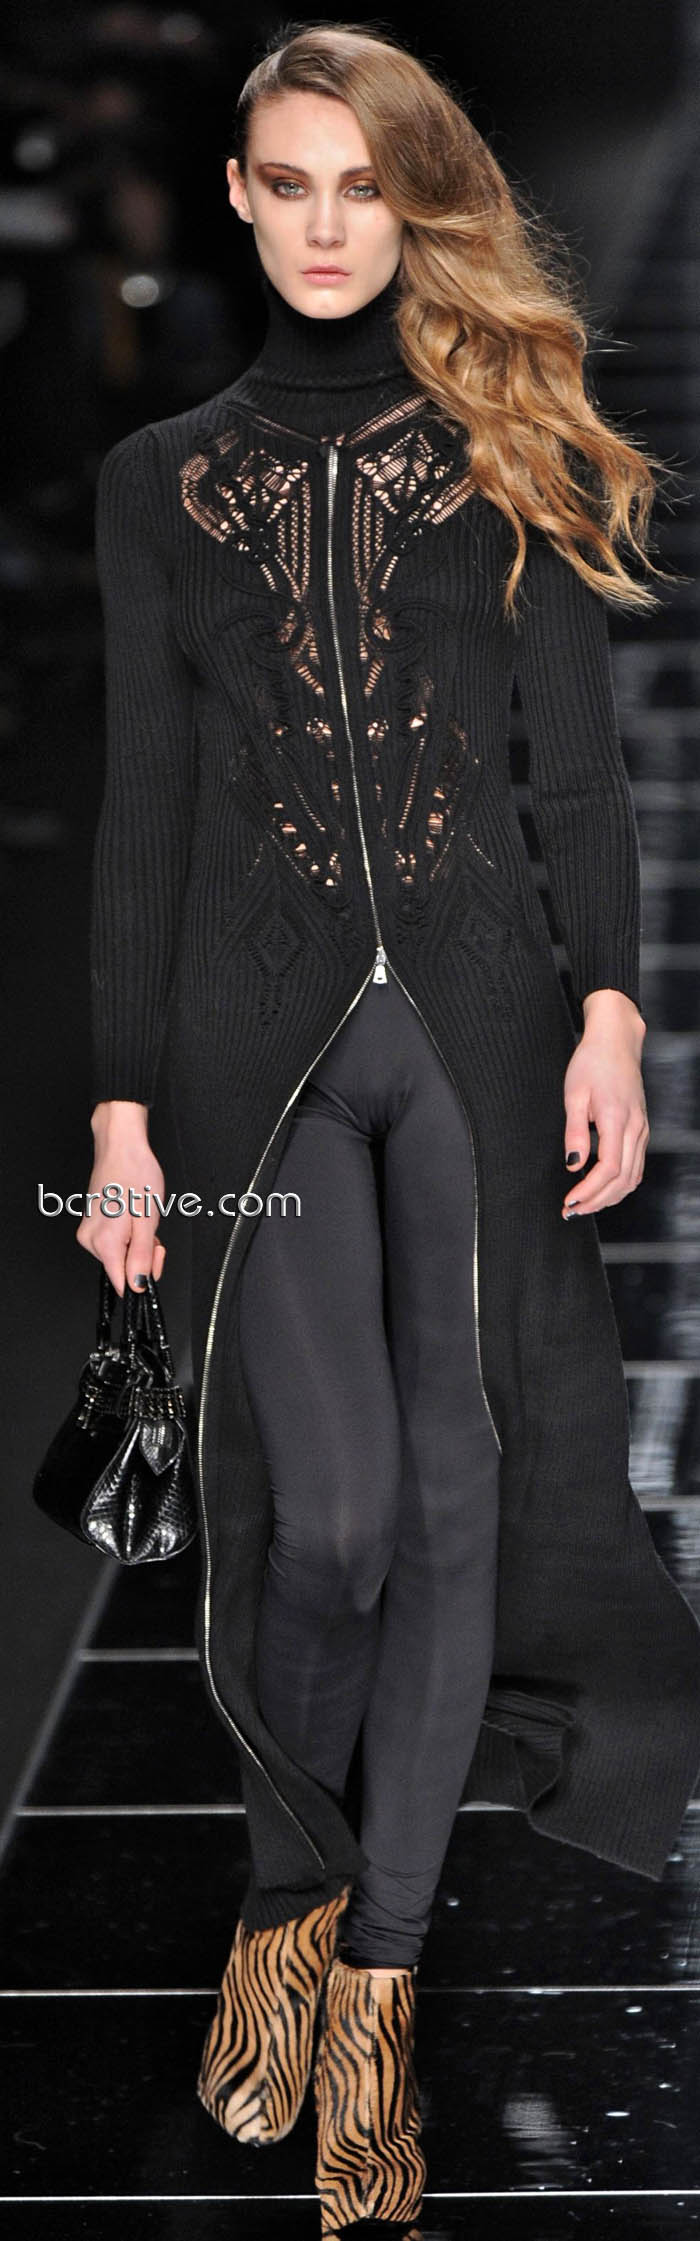 John Richmond Fall Winter 2010